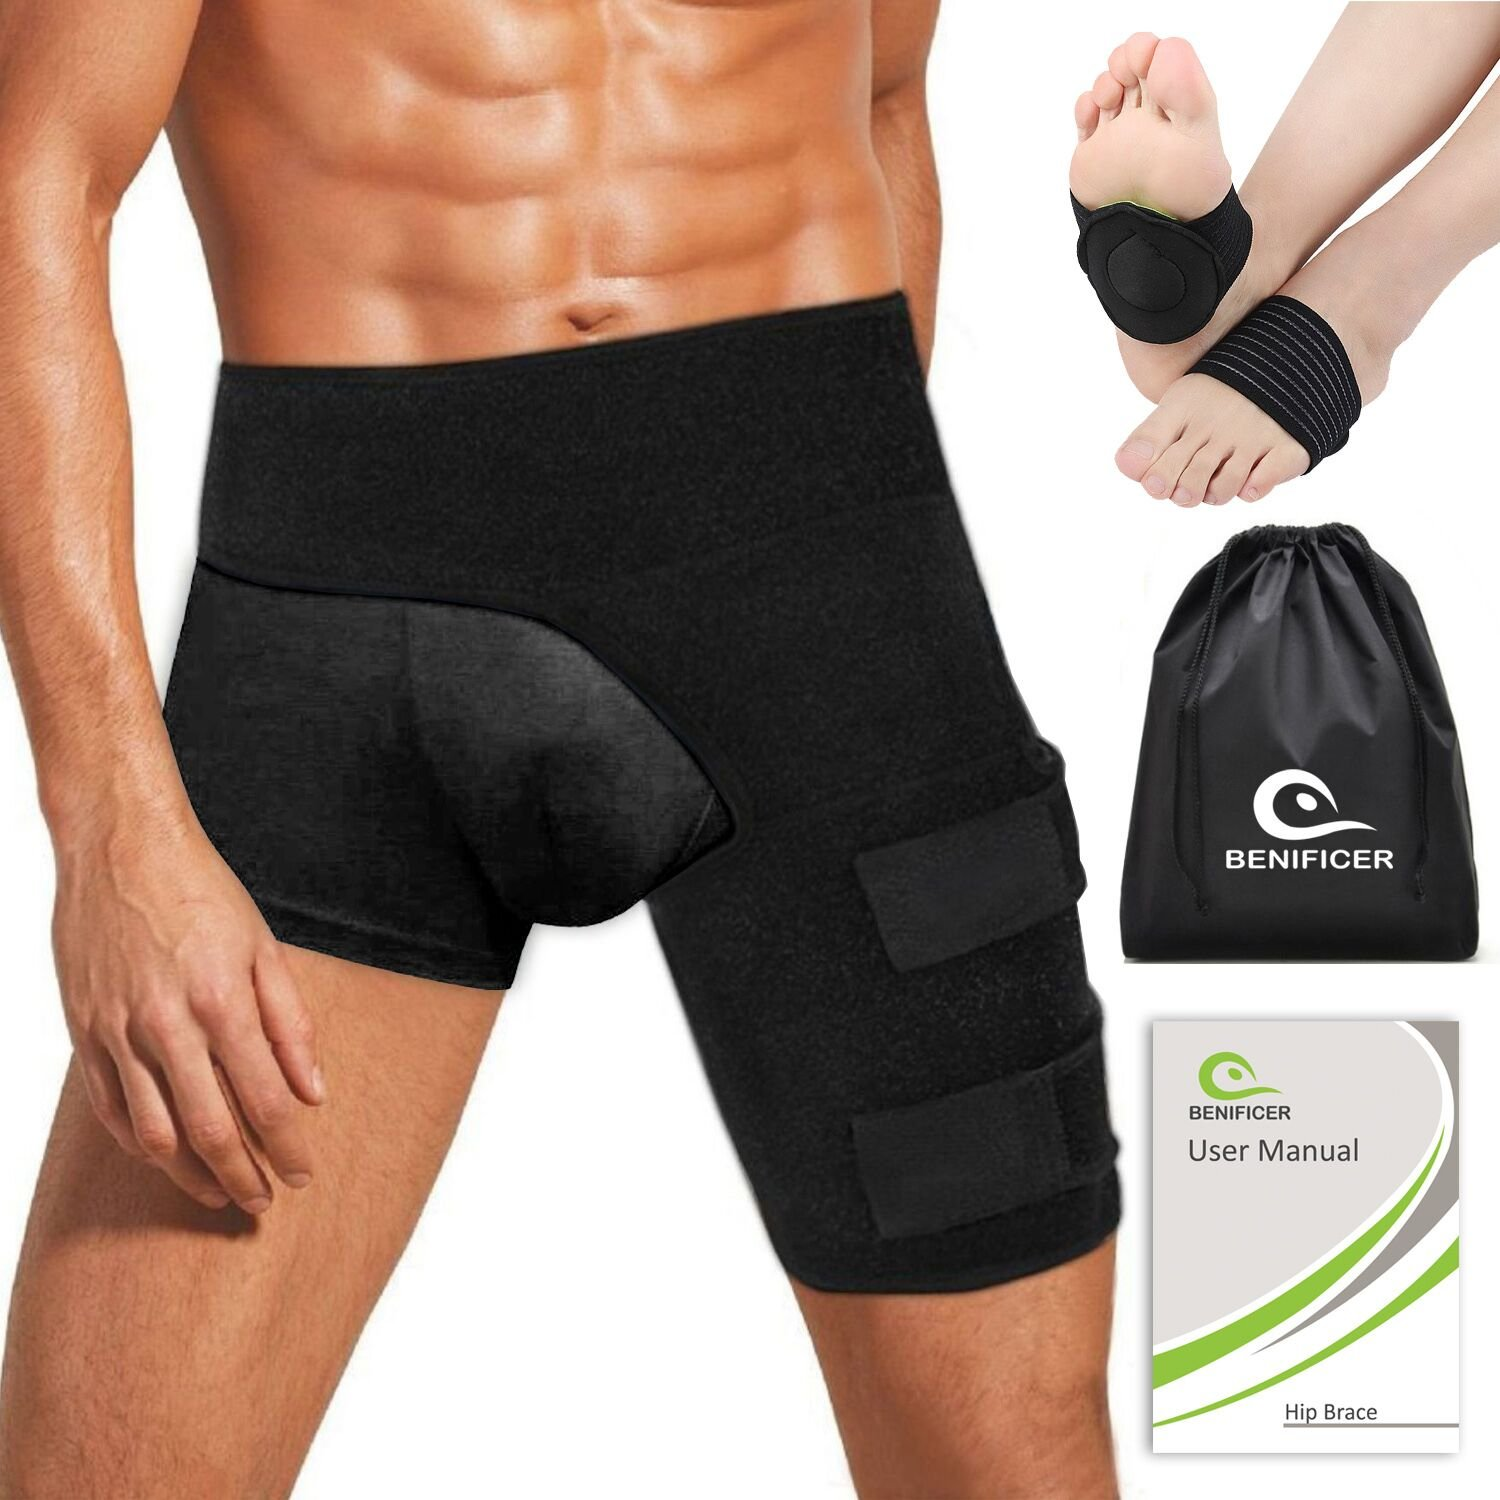 Benificer Hip Brace and Groin Support for Men Women Adjustable Hamstring Compression Sleeve Thigh Wrap Recover from Sciatica Arthritis Pulled Muscles Hip Flexor Joint Pain SI Belt with Foot Pads